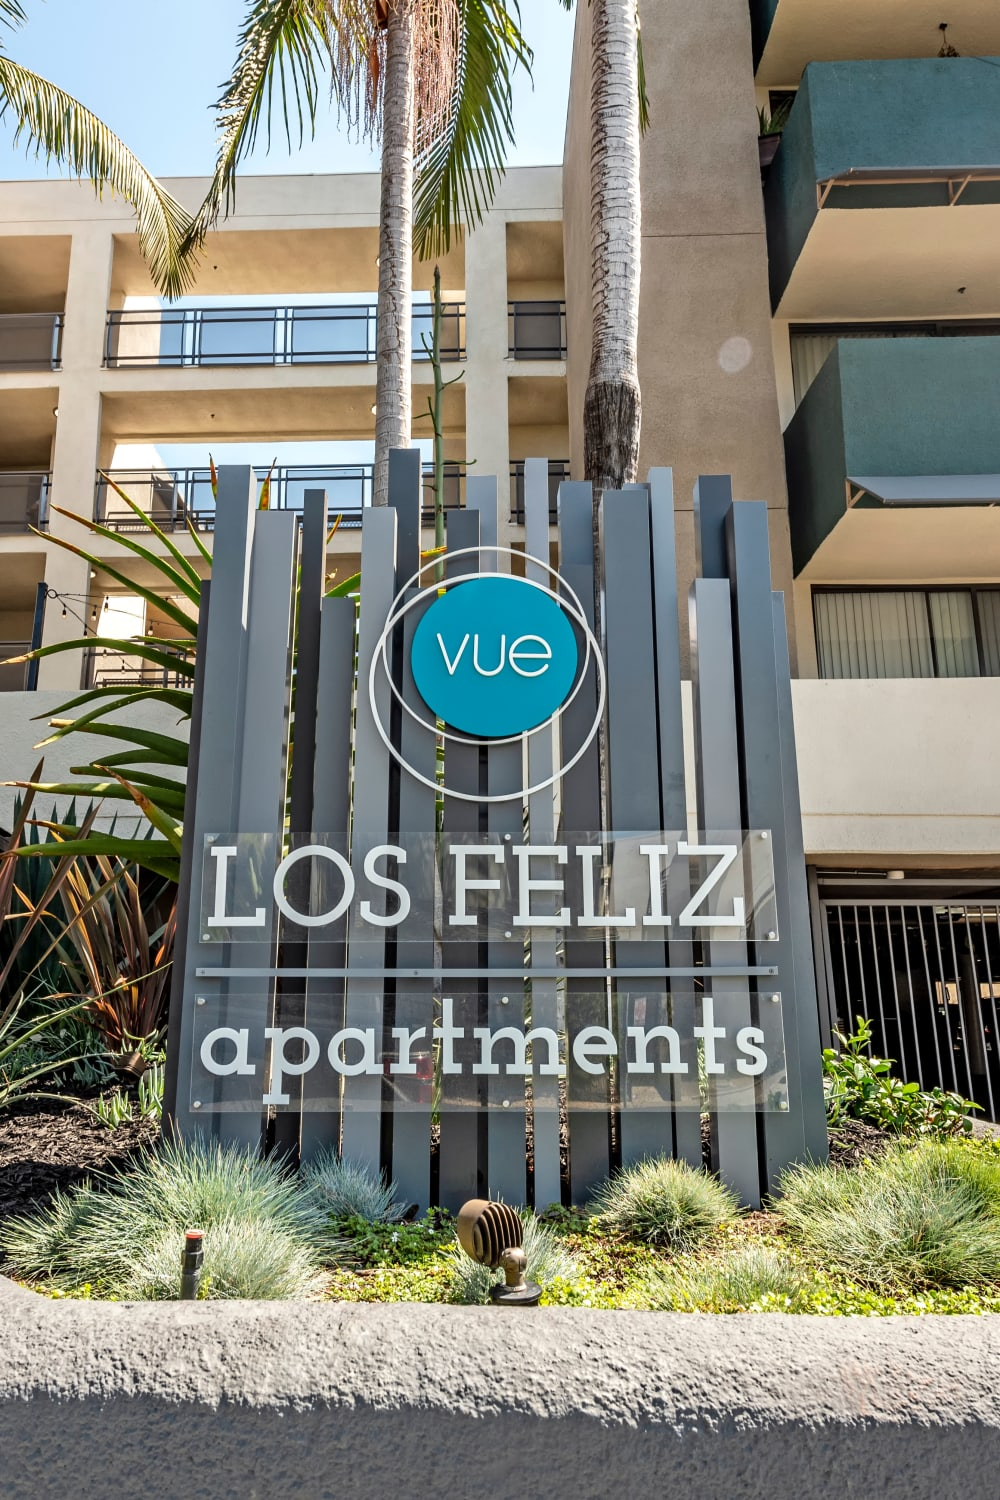 Exterior view of resident buildings with our sign out front at Vue Los Feliz in Los Angeles, California